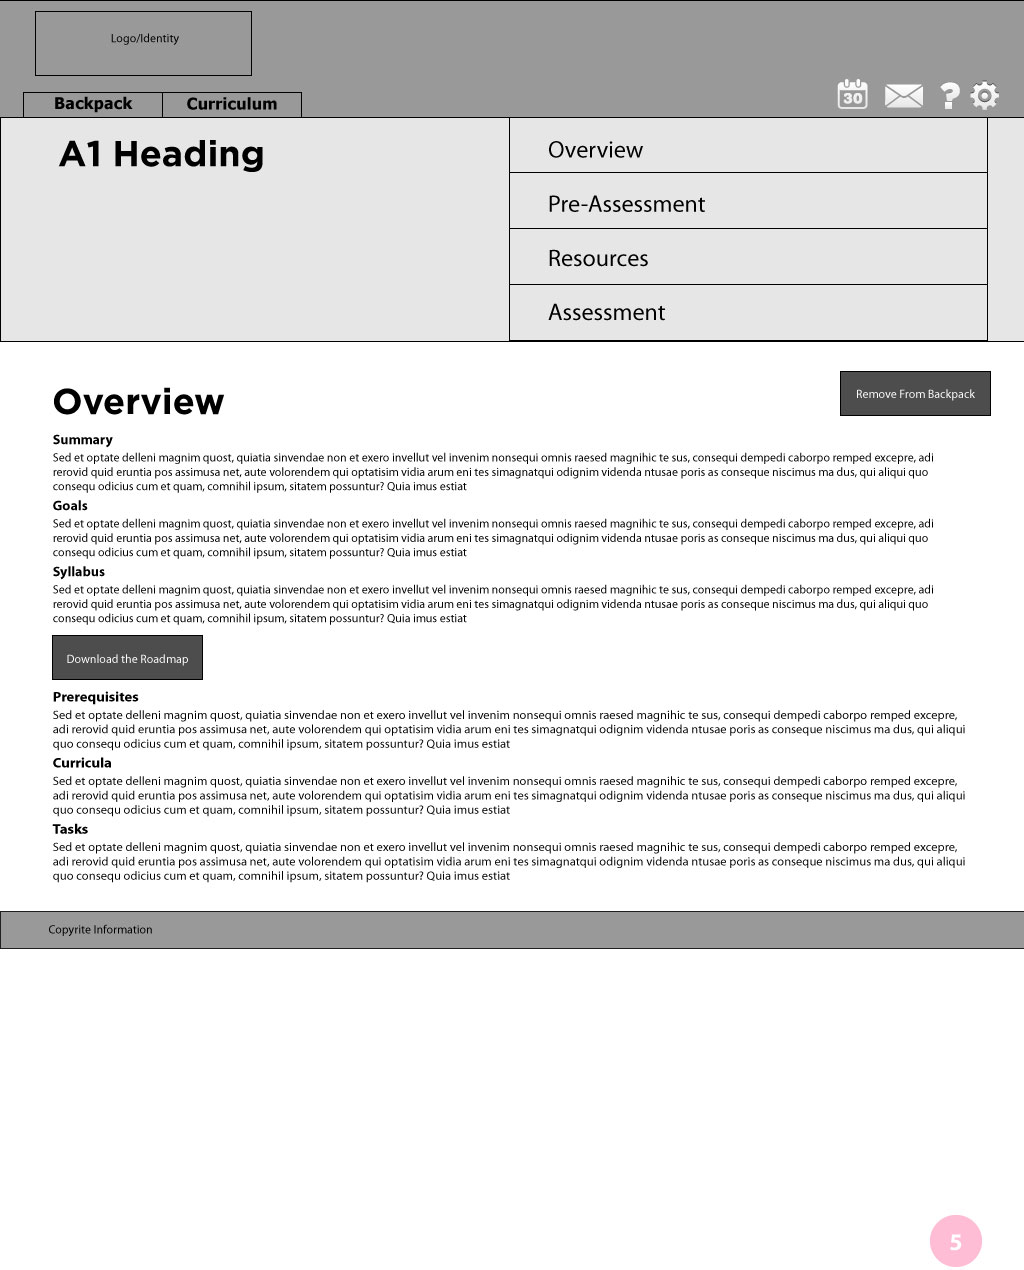 5_WIreframes_Overview